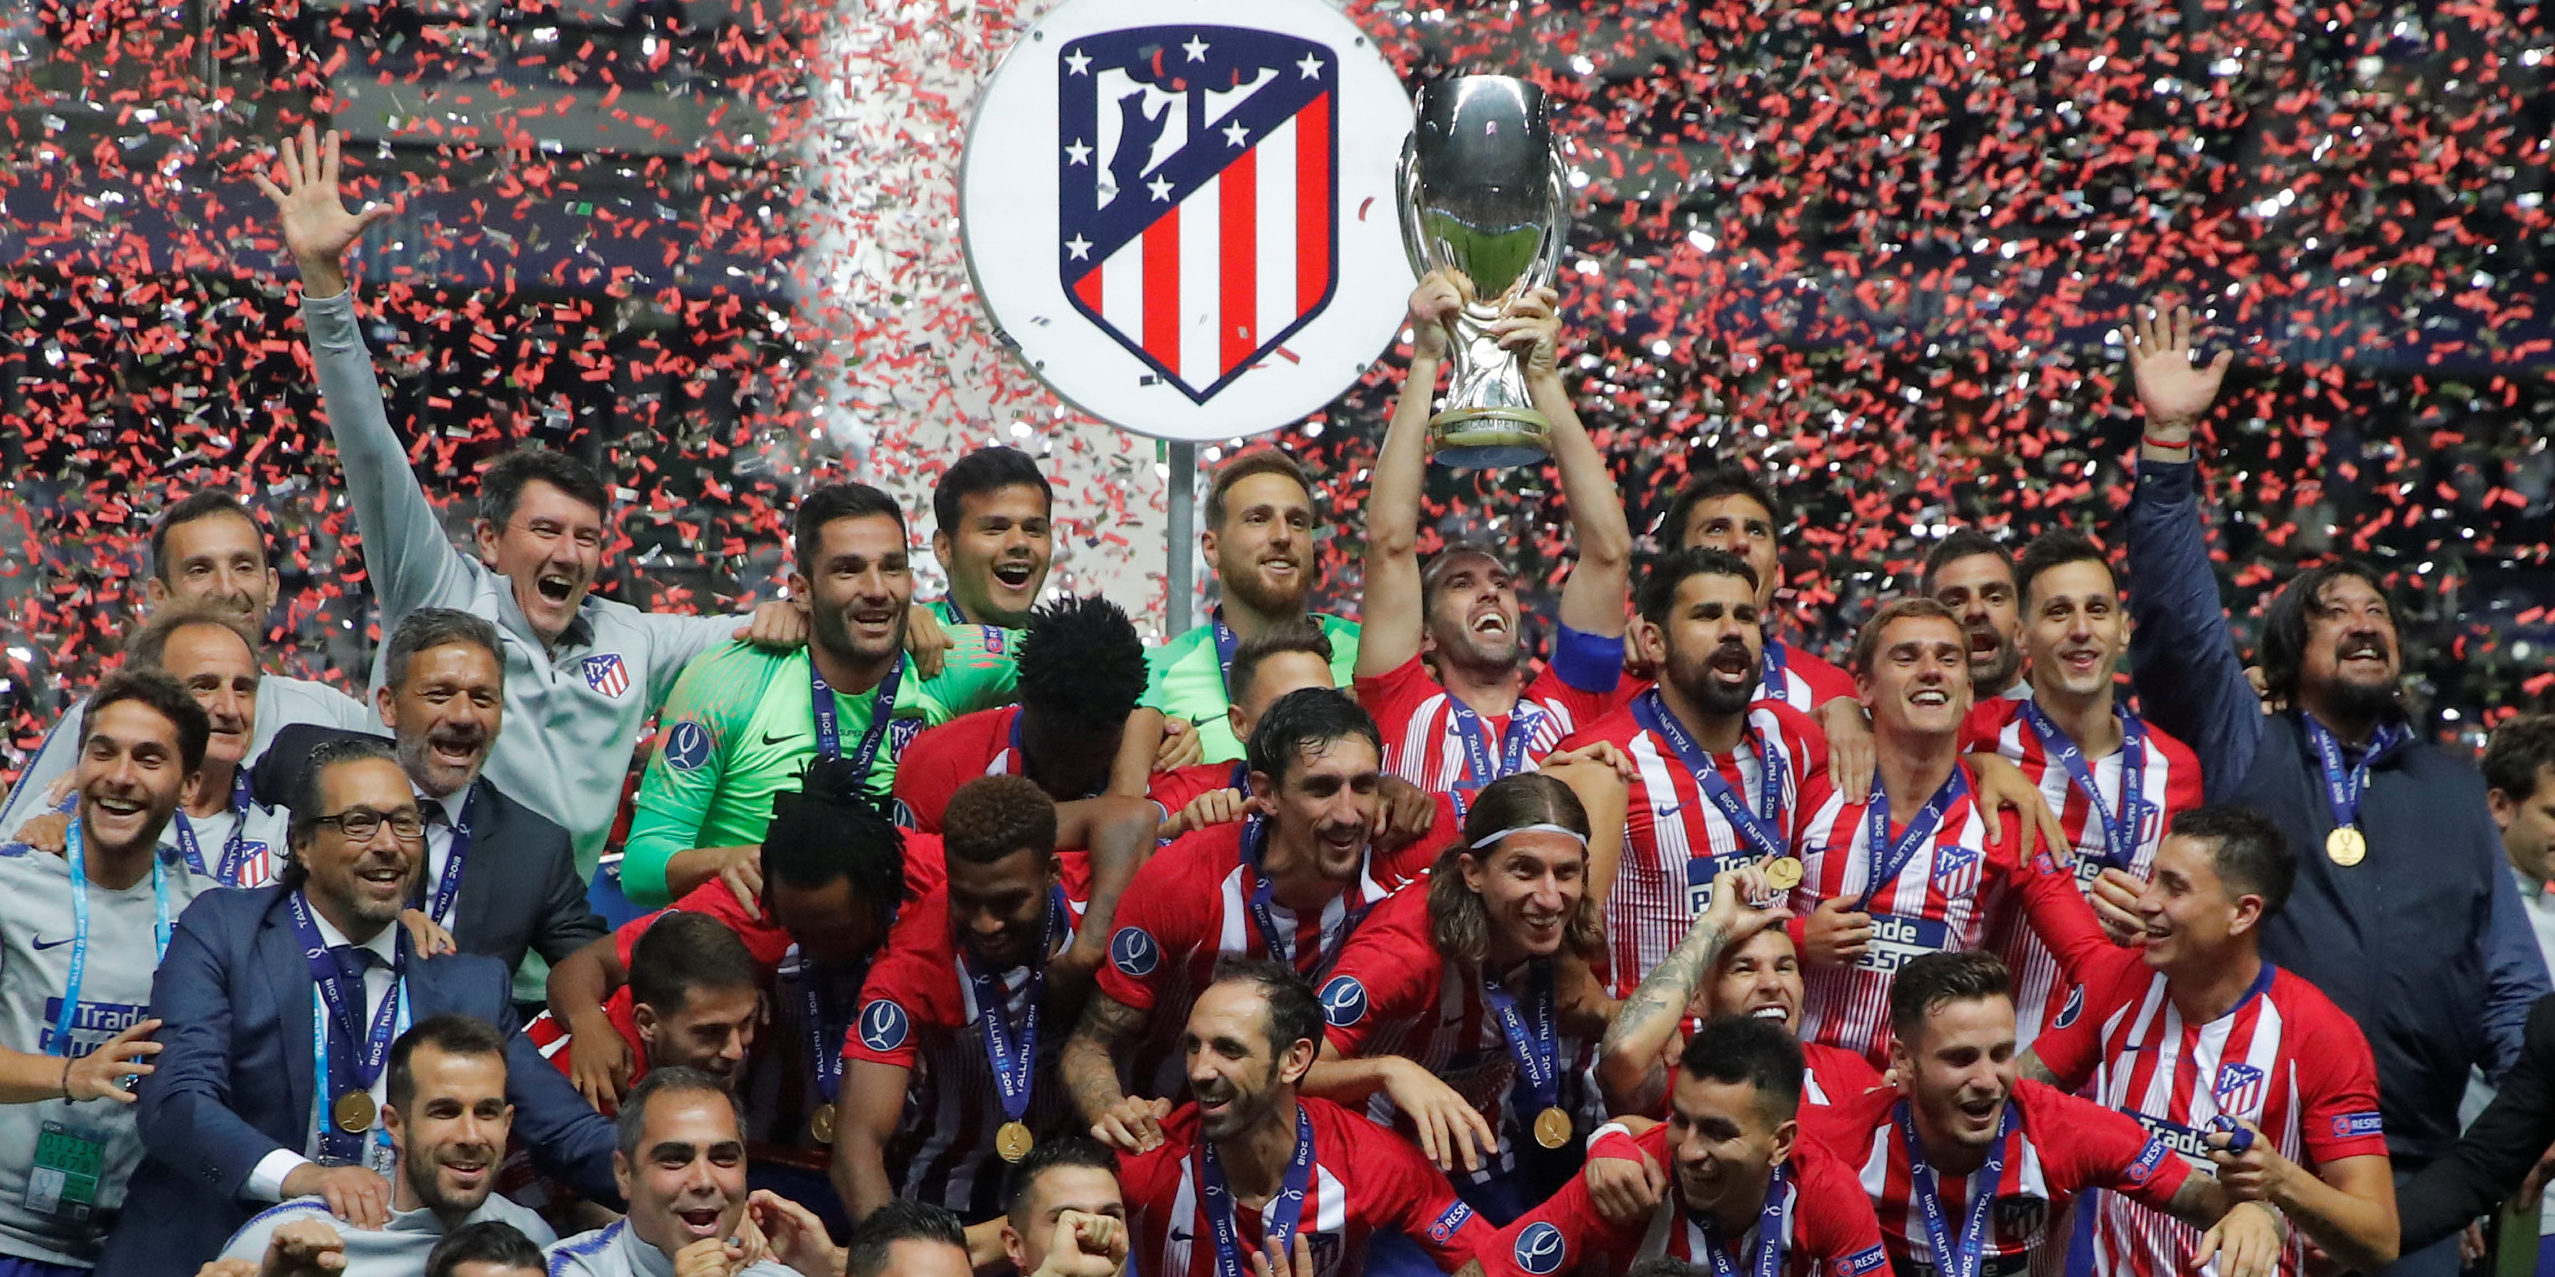 Atlético Madrid celebrate with the trophy after winning the 2018 UEFA Super Cup. (Photo: REUTERS/Maxim Shemetov)